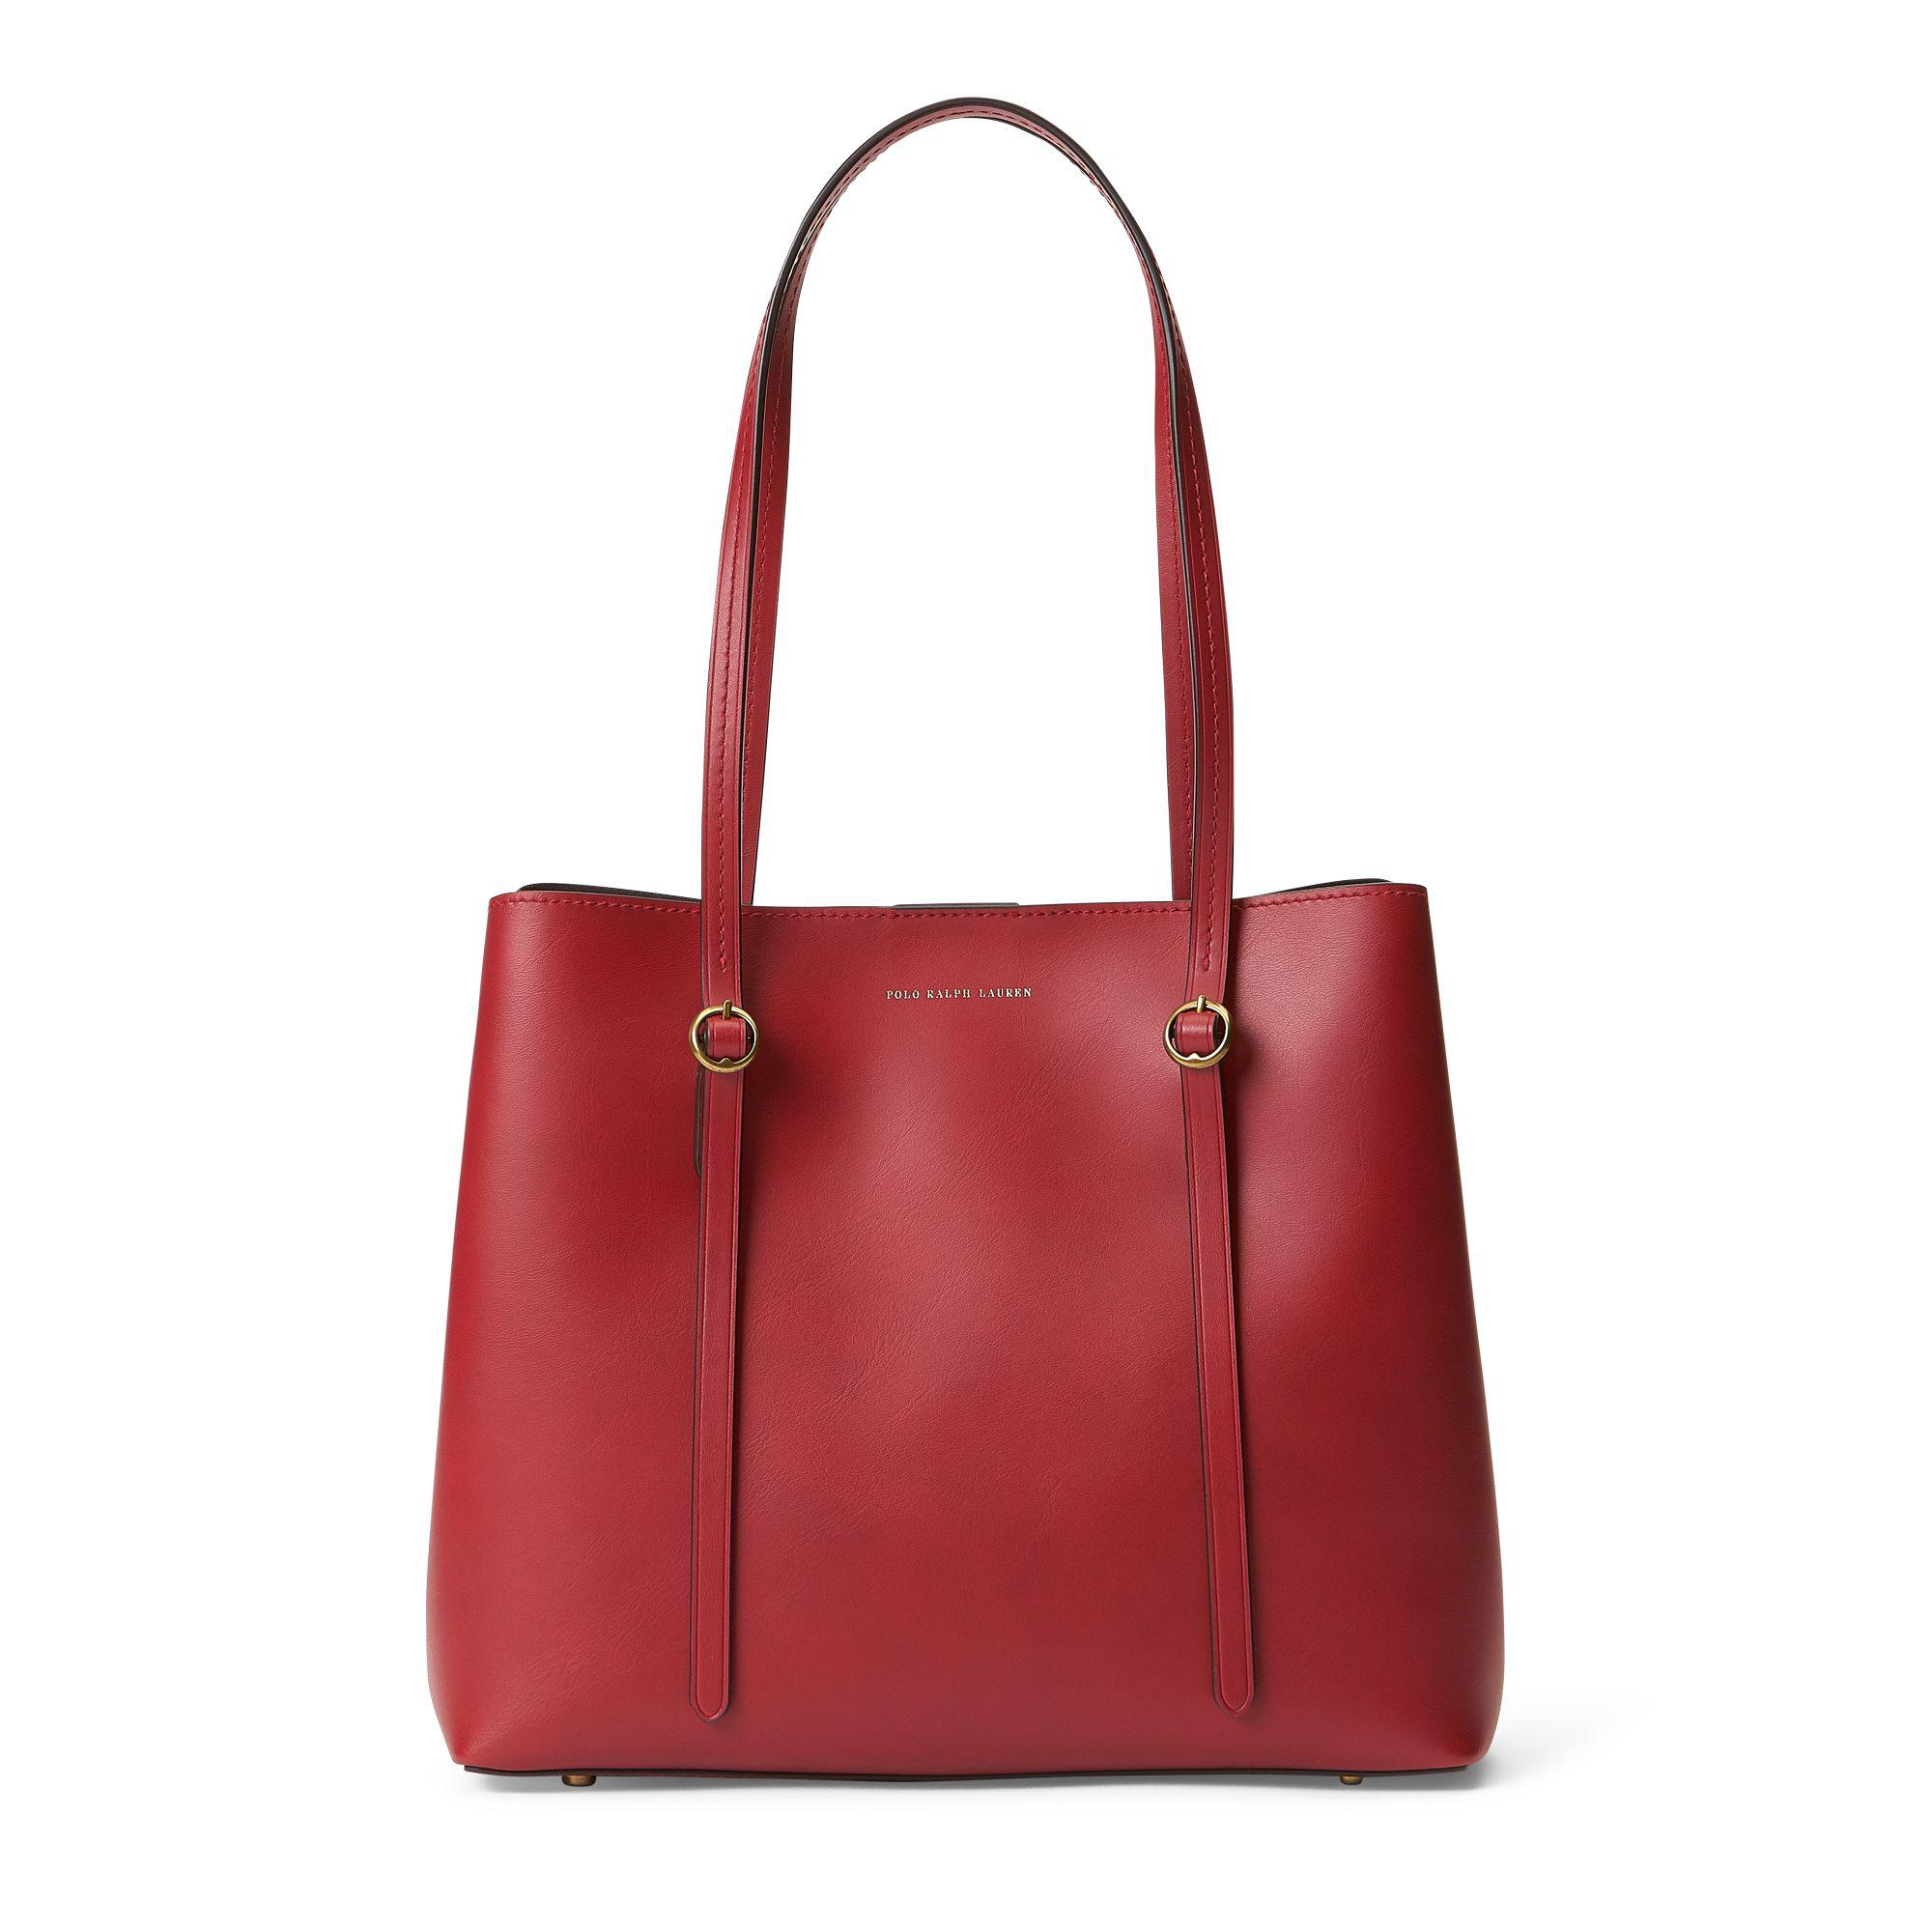 e7930d1cb18a Polo Ralph Lauren - Small Red Calfskin Leather Tote Bag With Magnet Closure  - Lyst. View fullscreen